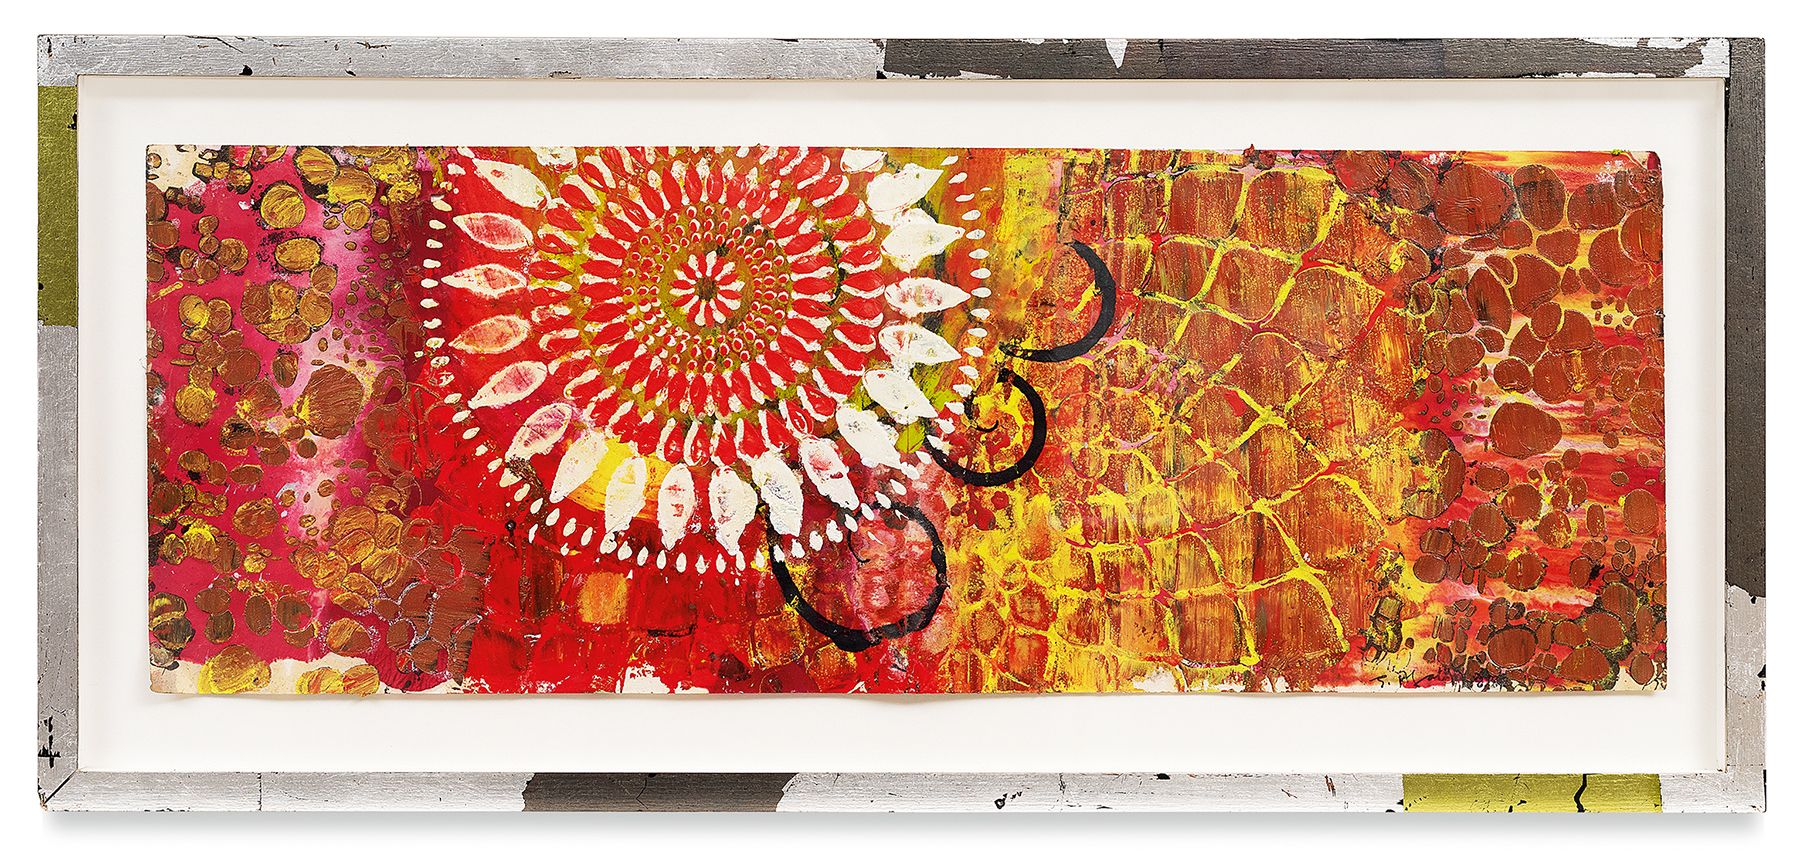 +'s & -'s #25, 2018, Oil stick, encaustic, vintage Indian paper, in artist's frame, 13.5 x 30 inches, 34.3 x 76.2 cm, MMG#30610